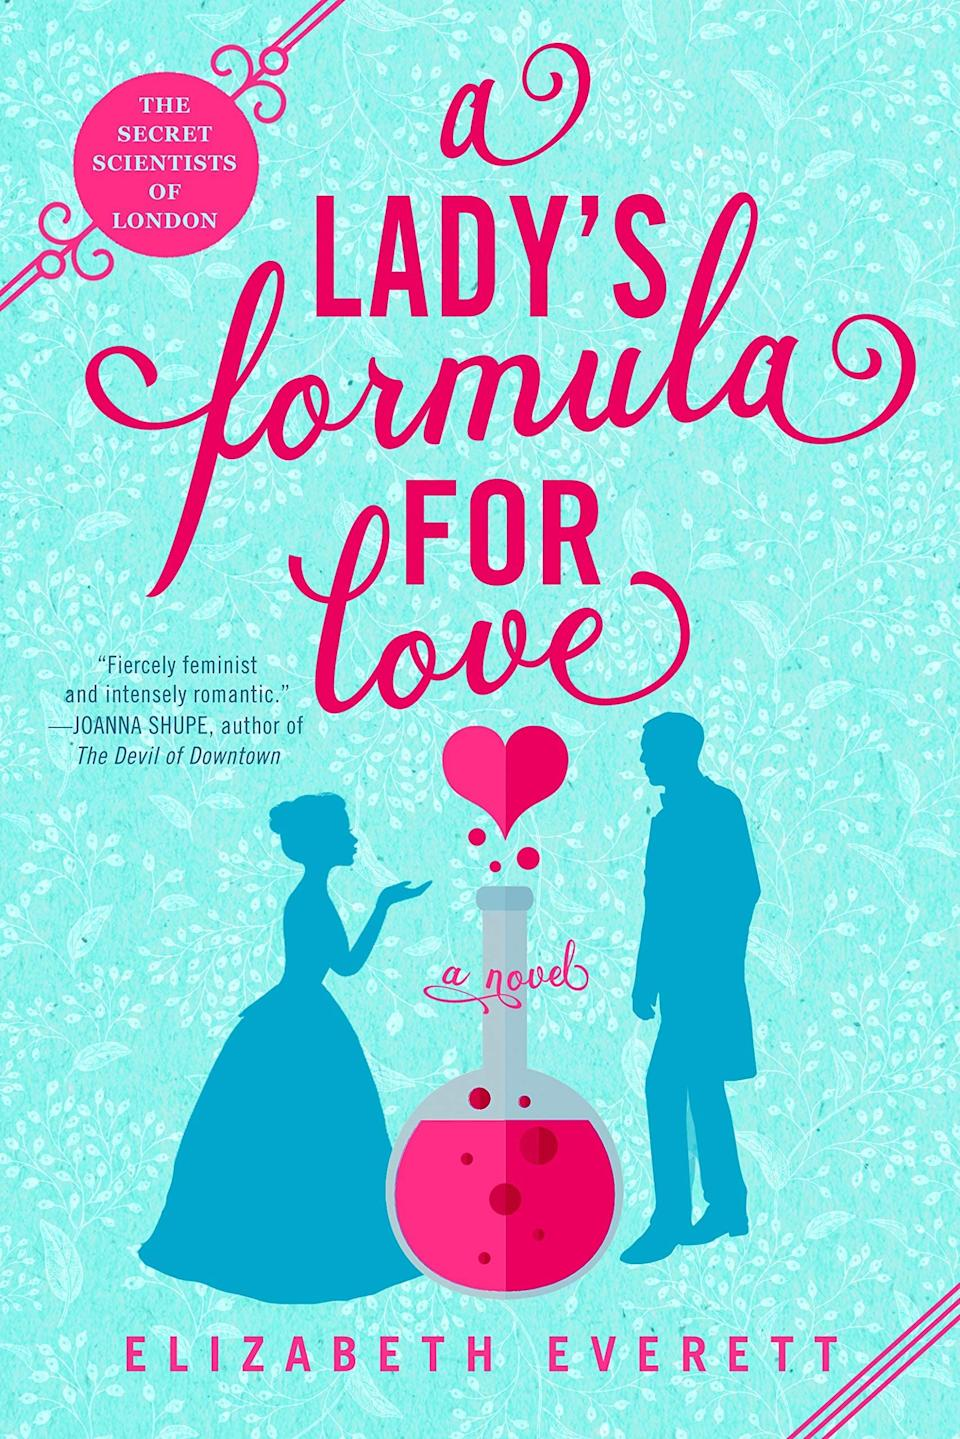 <p>Set in Victorian England, <span><strong>A Lady's Formula for Love</strong></span> by Elizabeth Everett is a delightful romp that follows Lady Violet, a scientist who forms a club for other female scientists - which is scandalous for the time. Violet and her friends are using their intellect to complete a mission for the queen herself, but they need a bit of protection along the way, which is where protection officer Arthur Kneland comes in to keep Violet safe (and fall madly in love with her in the process). </p> <p><em>Out Feb. 9</em></p>